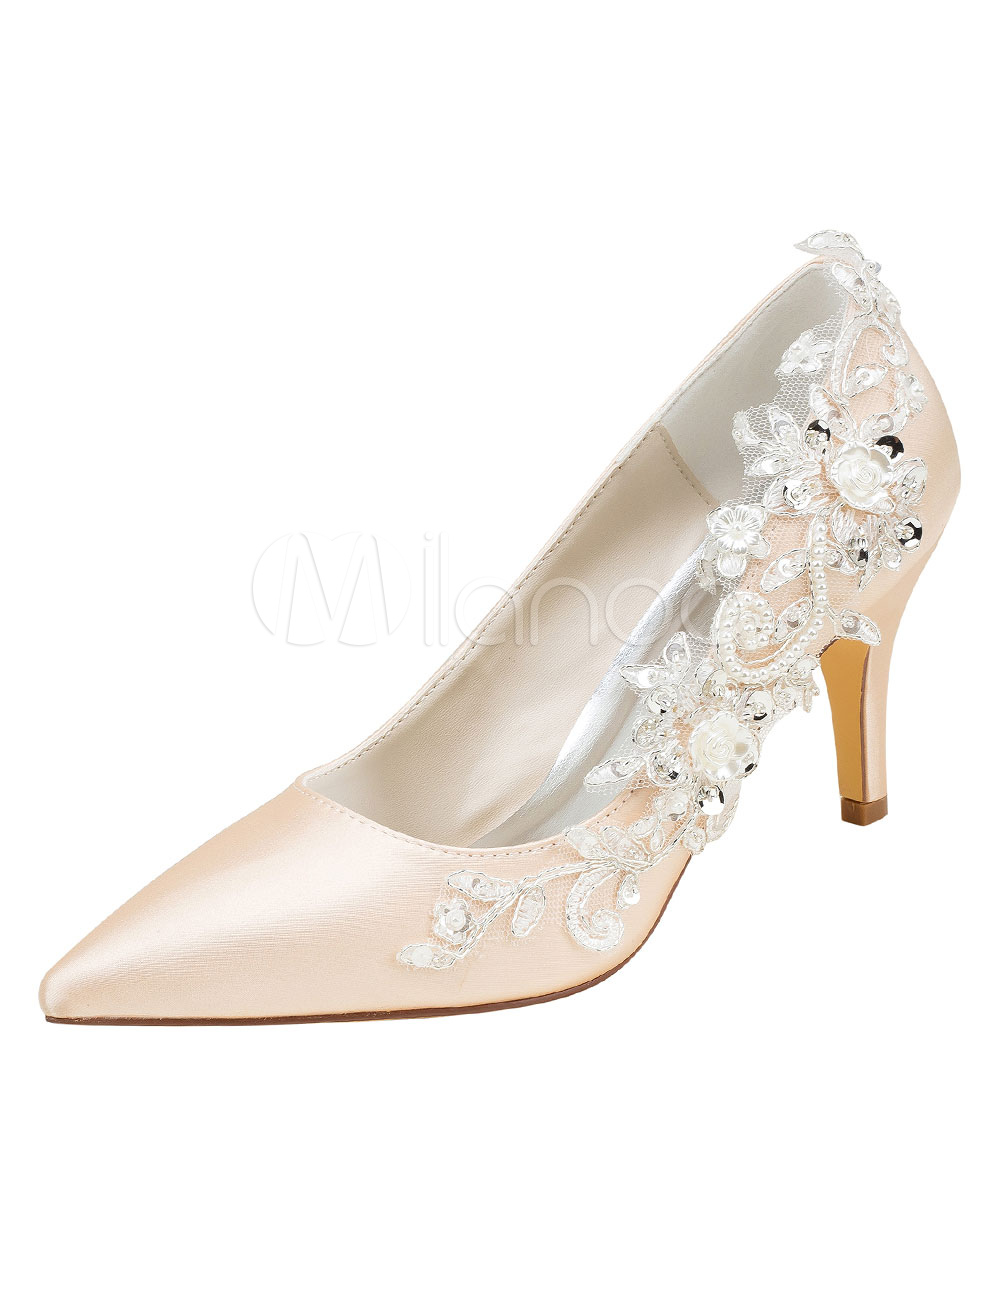 Champagne Wedding Shoes Silk High Heel Pointed Toe Flowers Detail Slip On Bridal Pumps